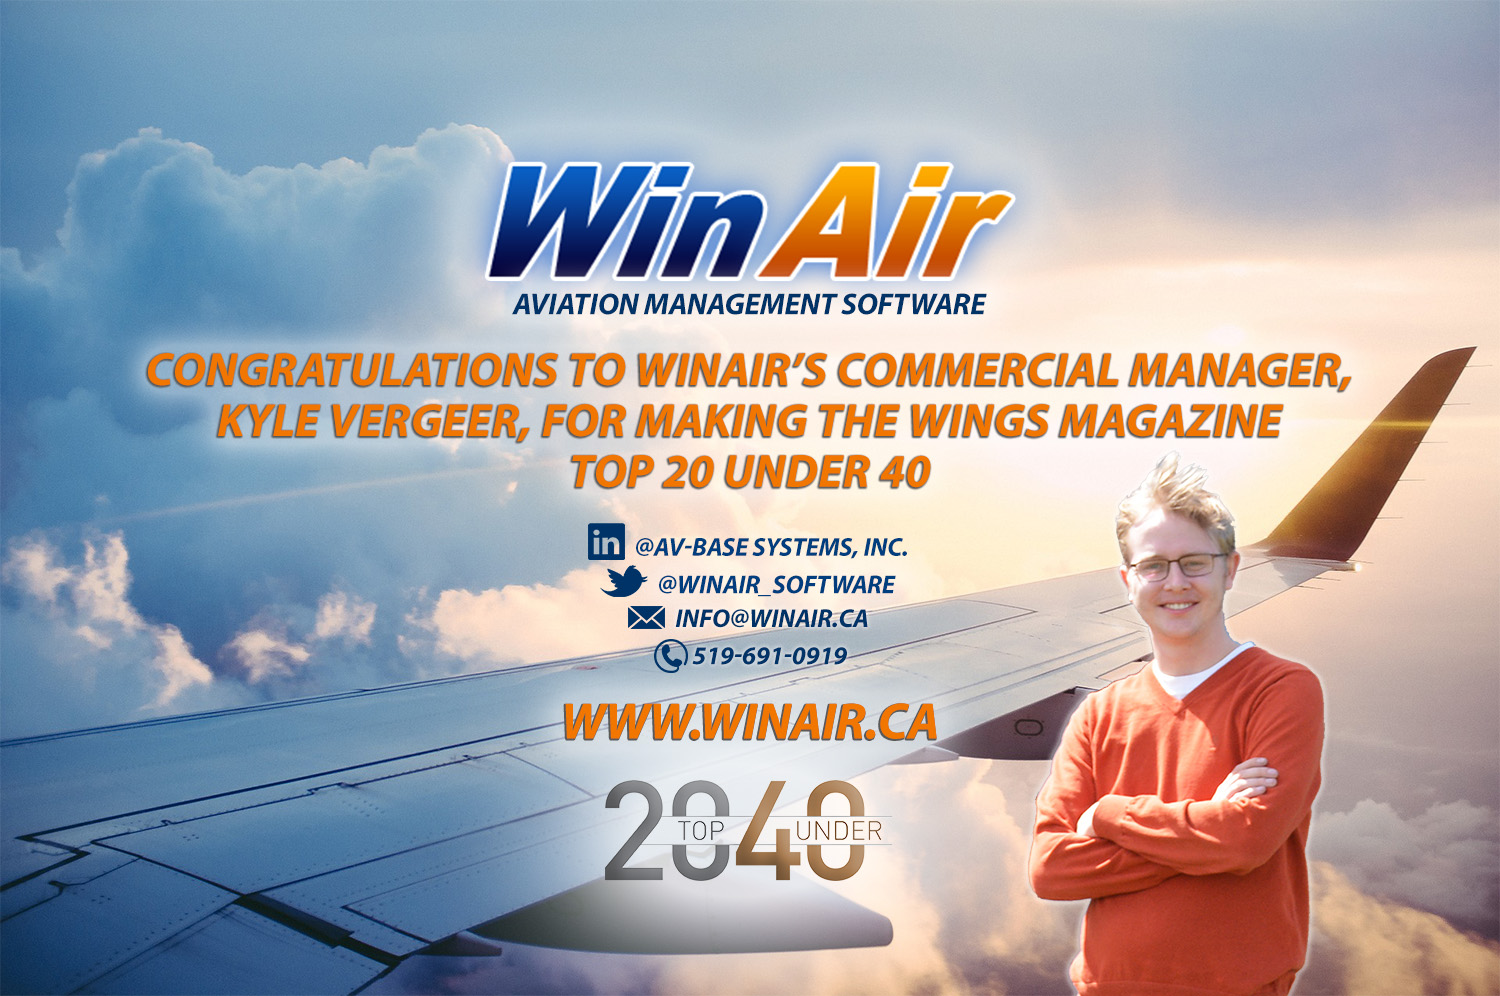 Kyle Vergeer WinAir Commercial Manager Top 20 Under 40 image